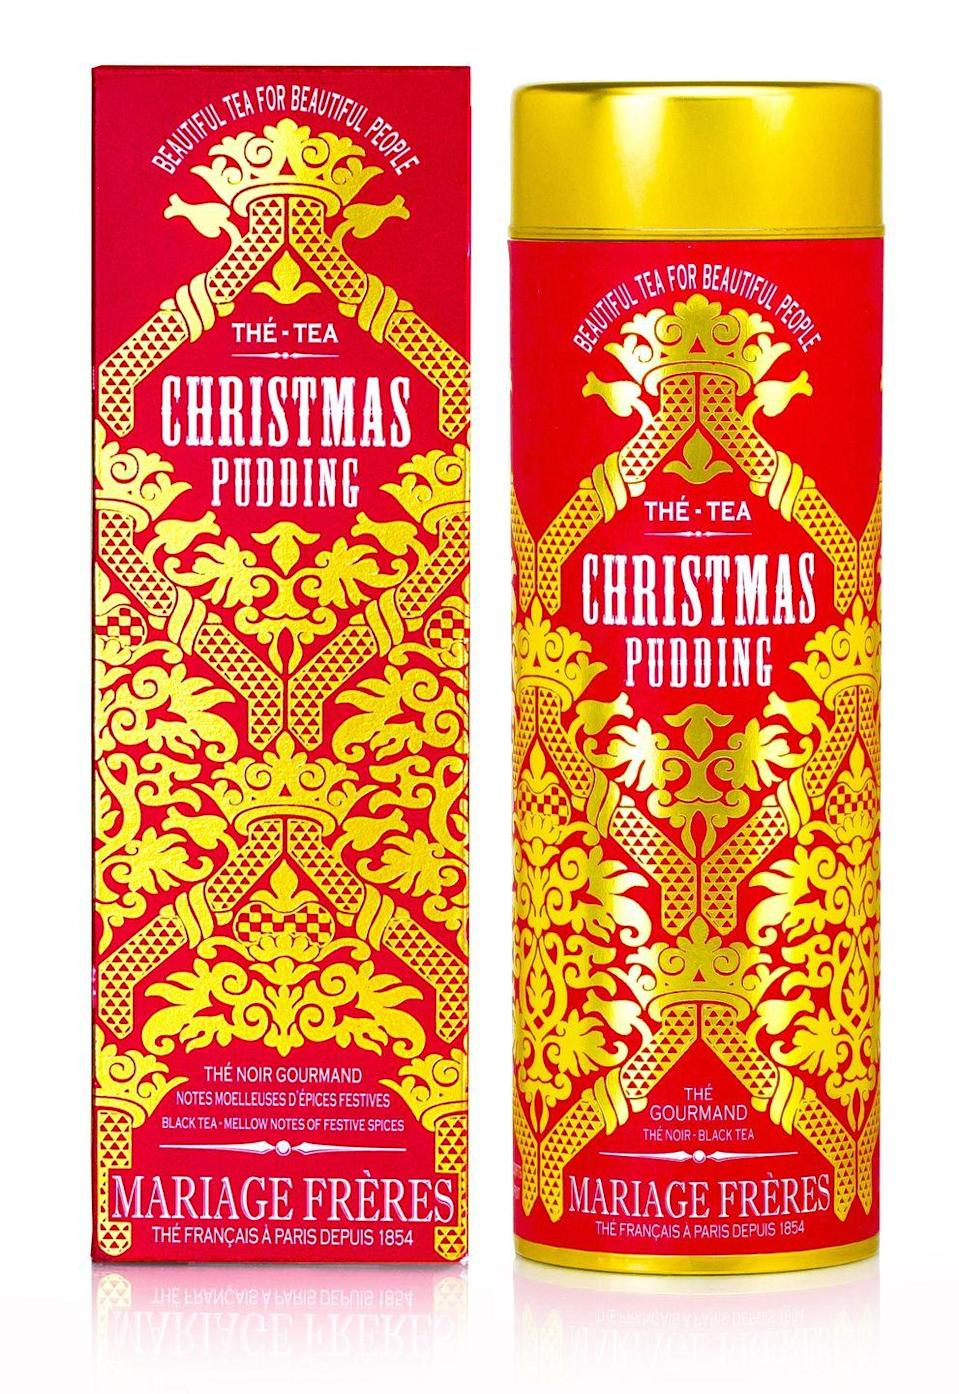 """<p><a class=""""link rapid-noclick-resp"""" href=""""https://www.mariagefreres.com/UK/2-christmas-pudding-black-flavoured-tea-TE9216.html"""" rel=""""nofollow noopener"""" target=""""_blank"""" data-ylk=""""slk:SHOP NOW"""">SHOP NOW</a></p><p>What's better than a Christmas pudding? One you can justify enjoying every single day – which is why we love this festive tea, with its flavours of cinnamon, nutmeg, candied orange, cherry and vanilla.</p><p>Christmas Pudding tea, about £23, Mariage Frères</p>"""